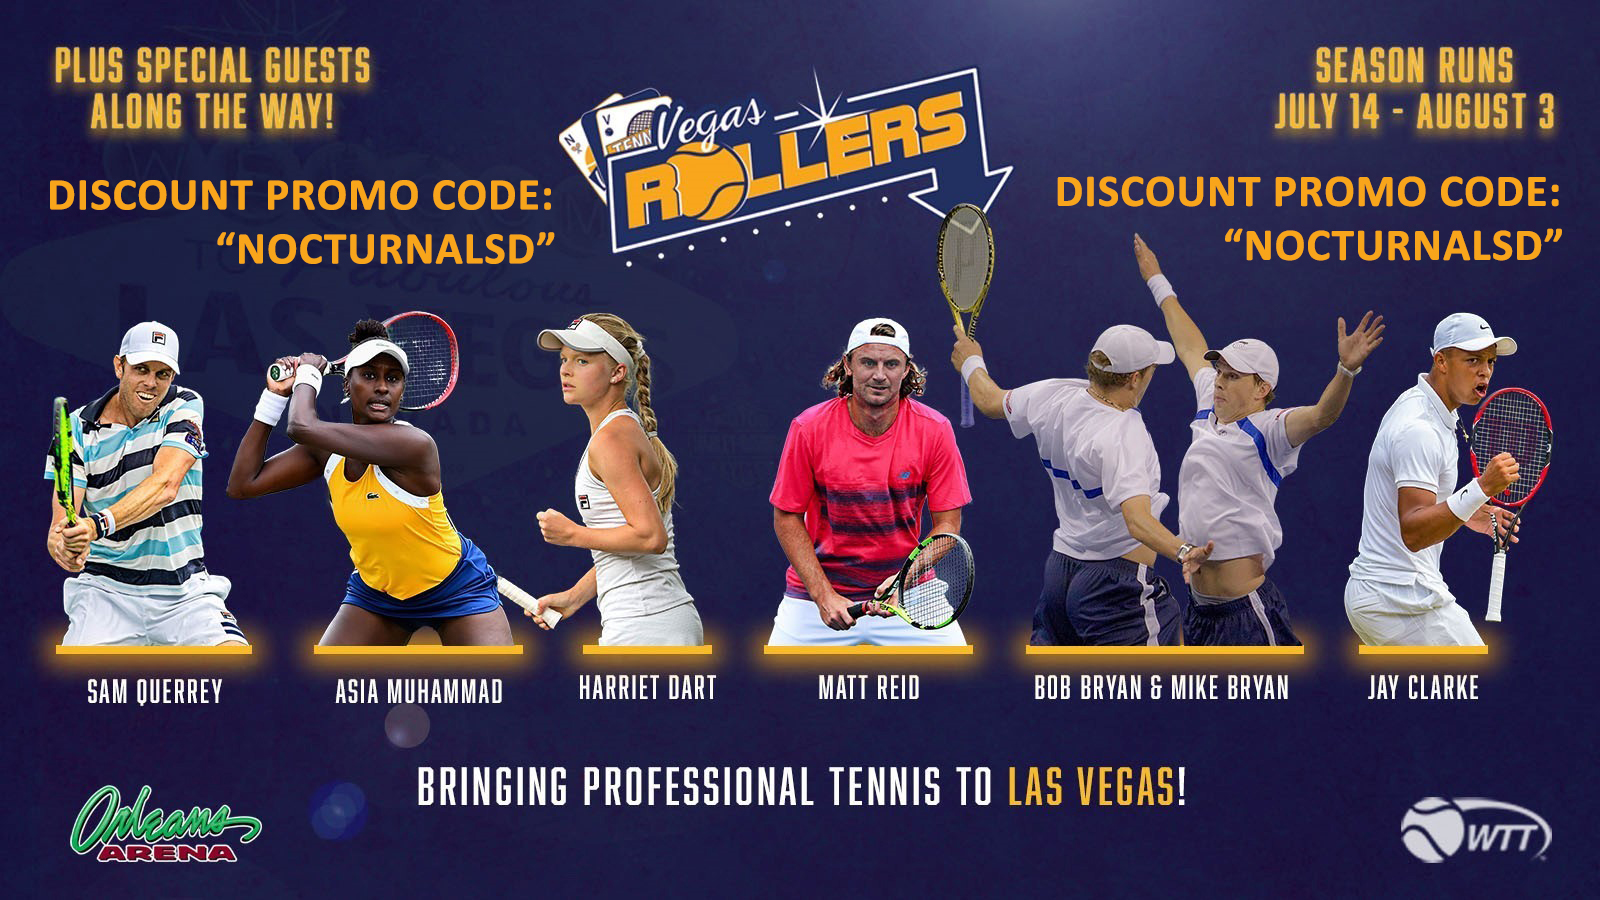 Vegas Rollers Tennis Tickets Discount Promo Code, Las Vegas, Professional Tennis, Discount Passes, Discount VIP